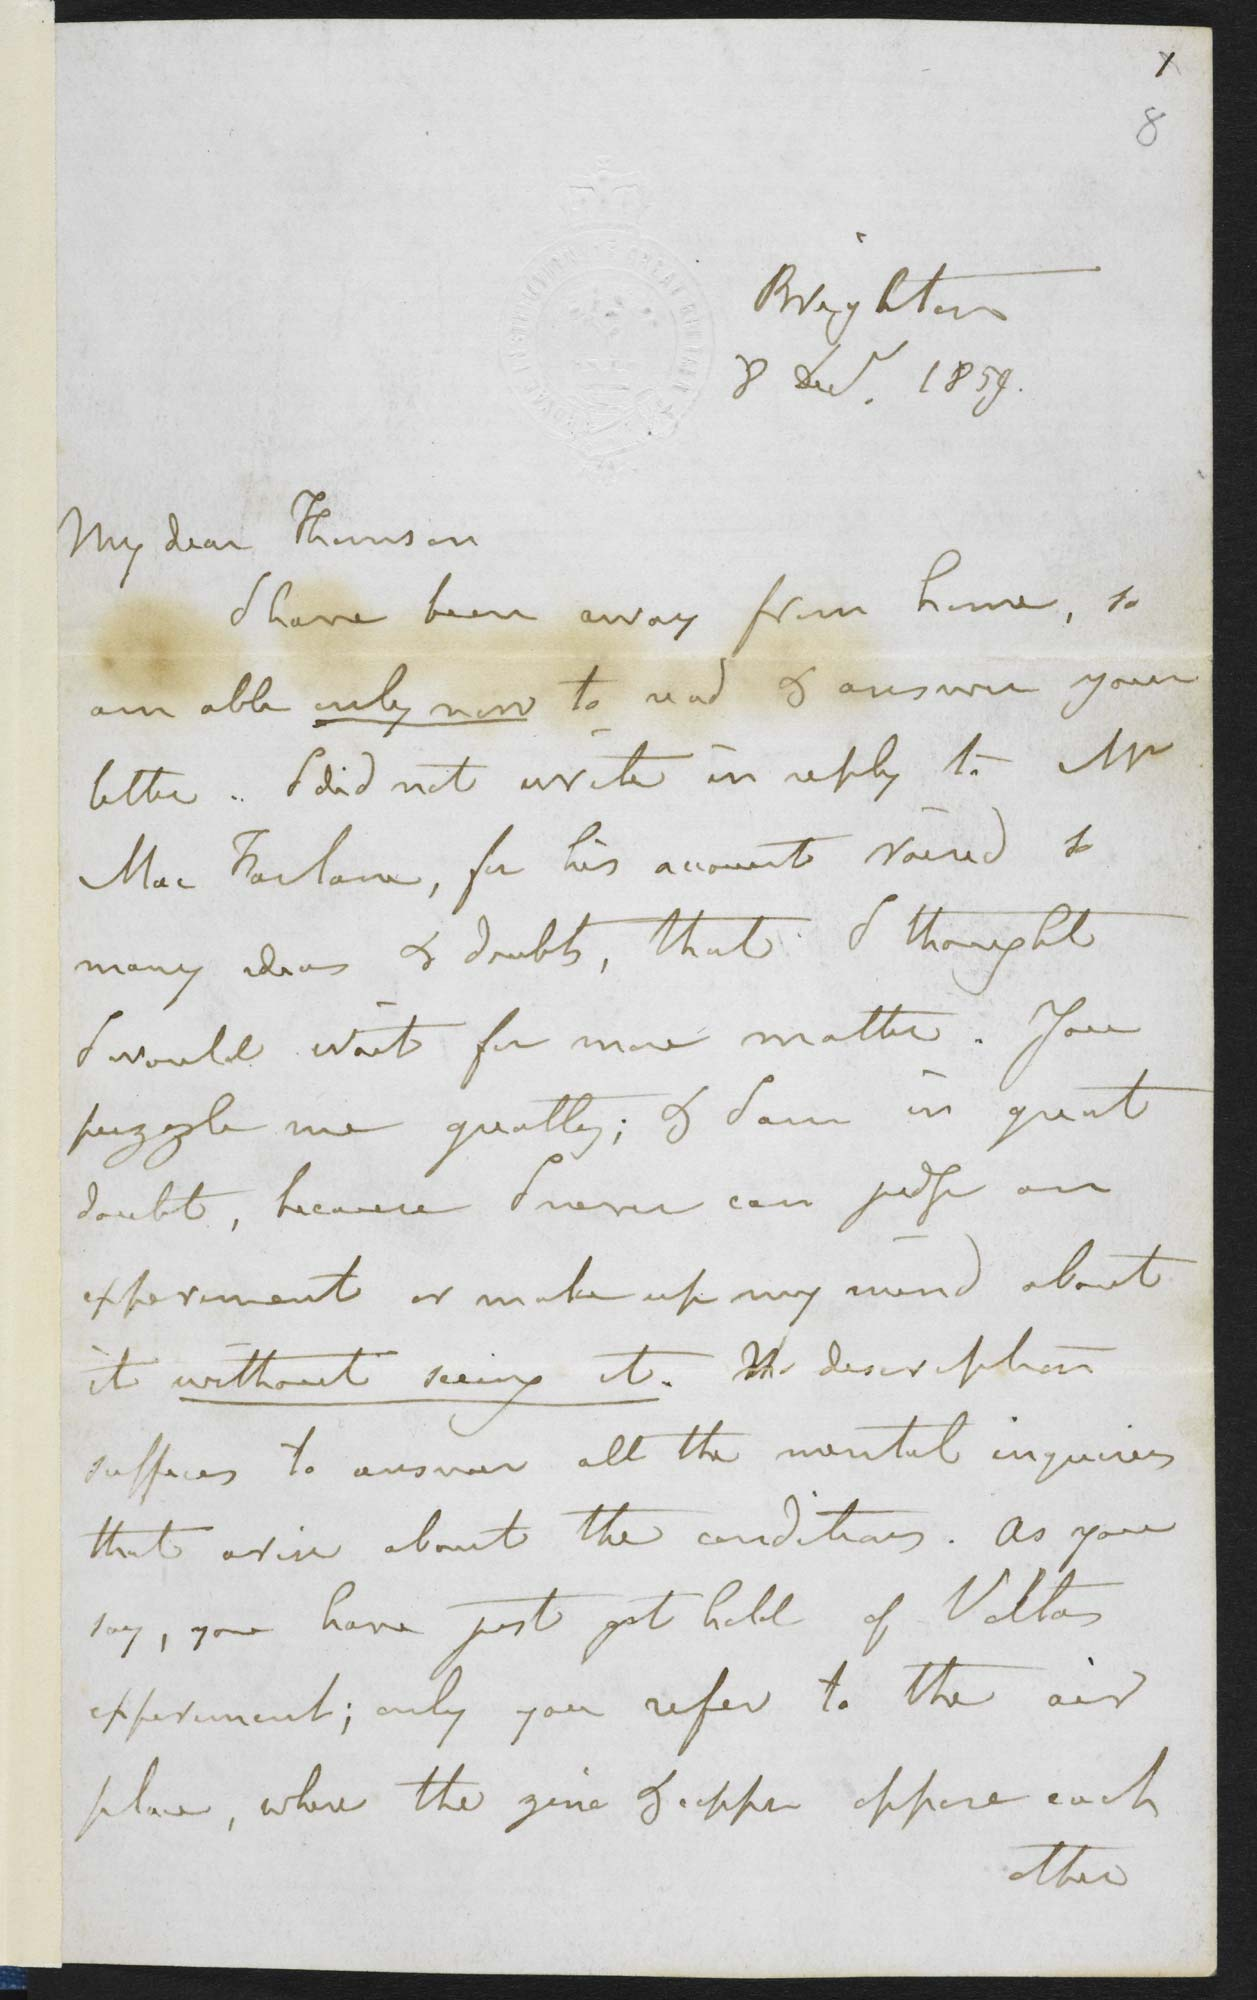 Michael Faraday's letter to William Thomson, f.8